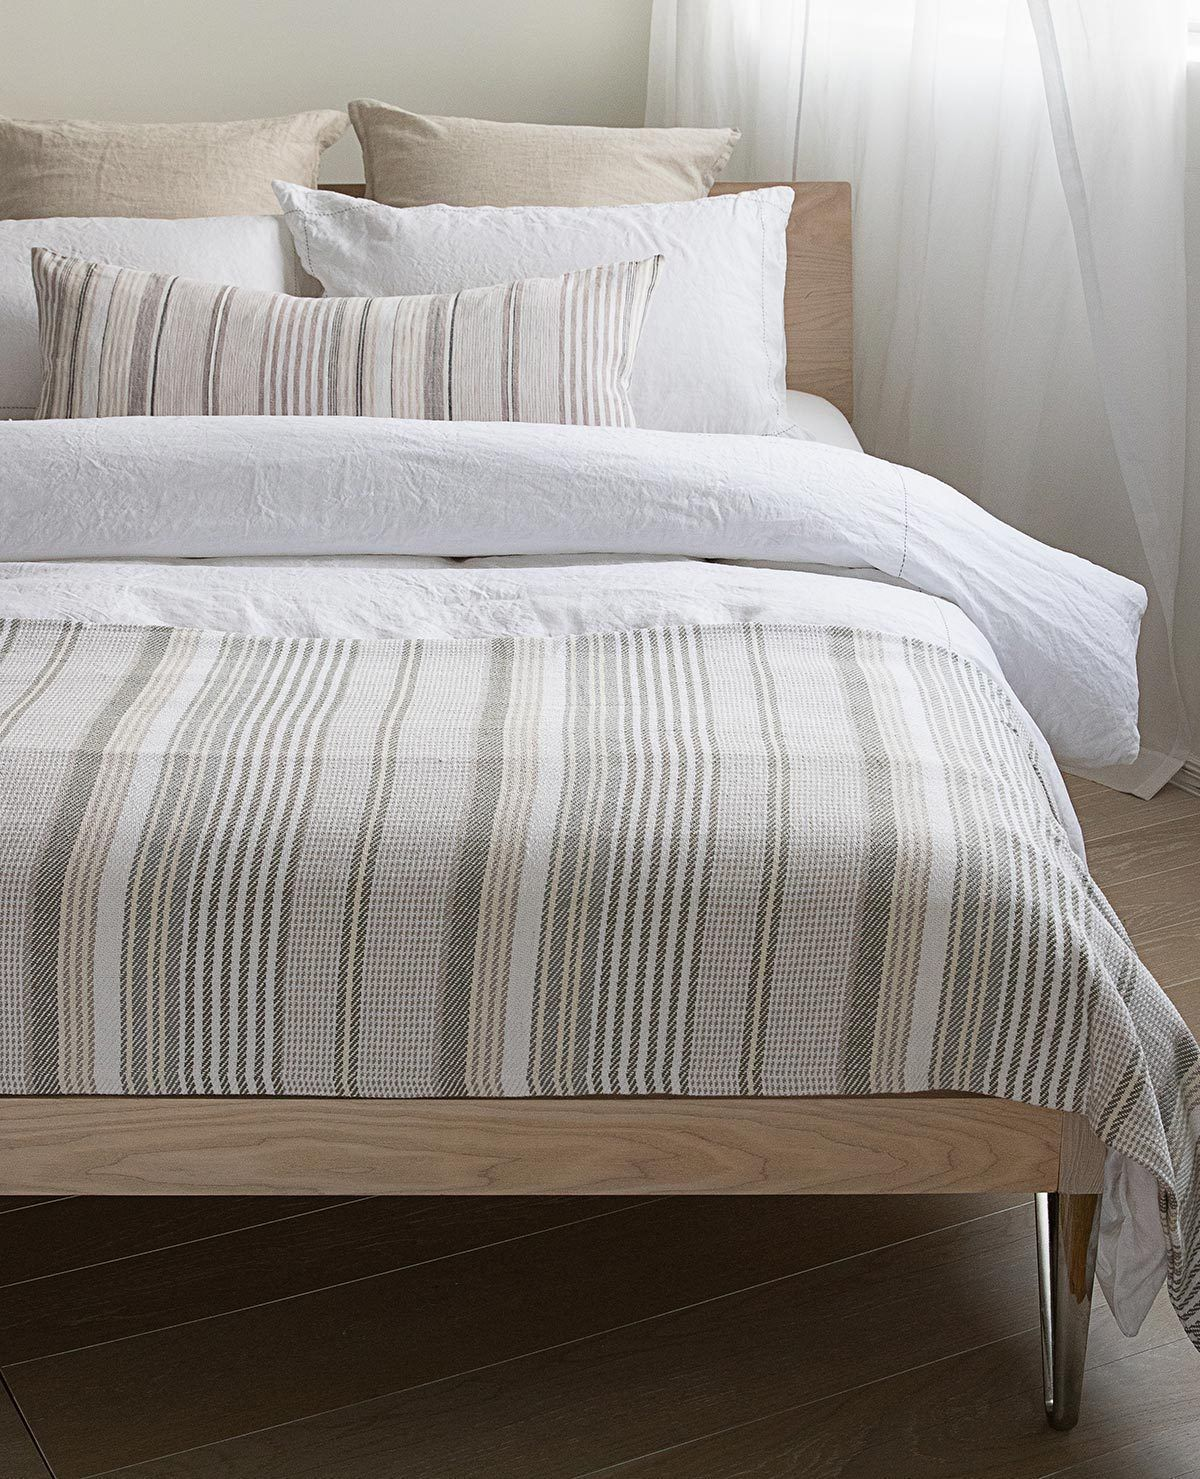 Gradation Coverlet Grey Taupe Stripe White Linen Bedding Bed Linens Luxury Contemporary Bed Linen